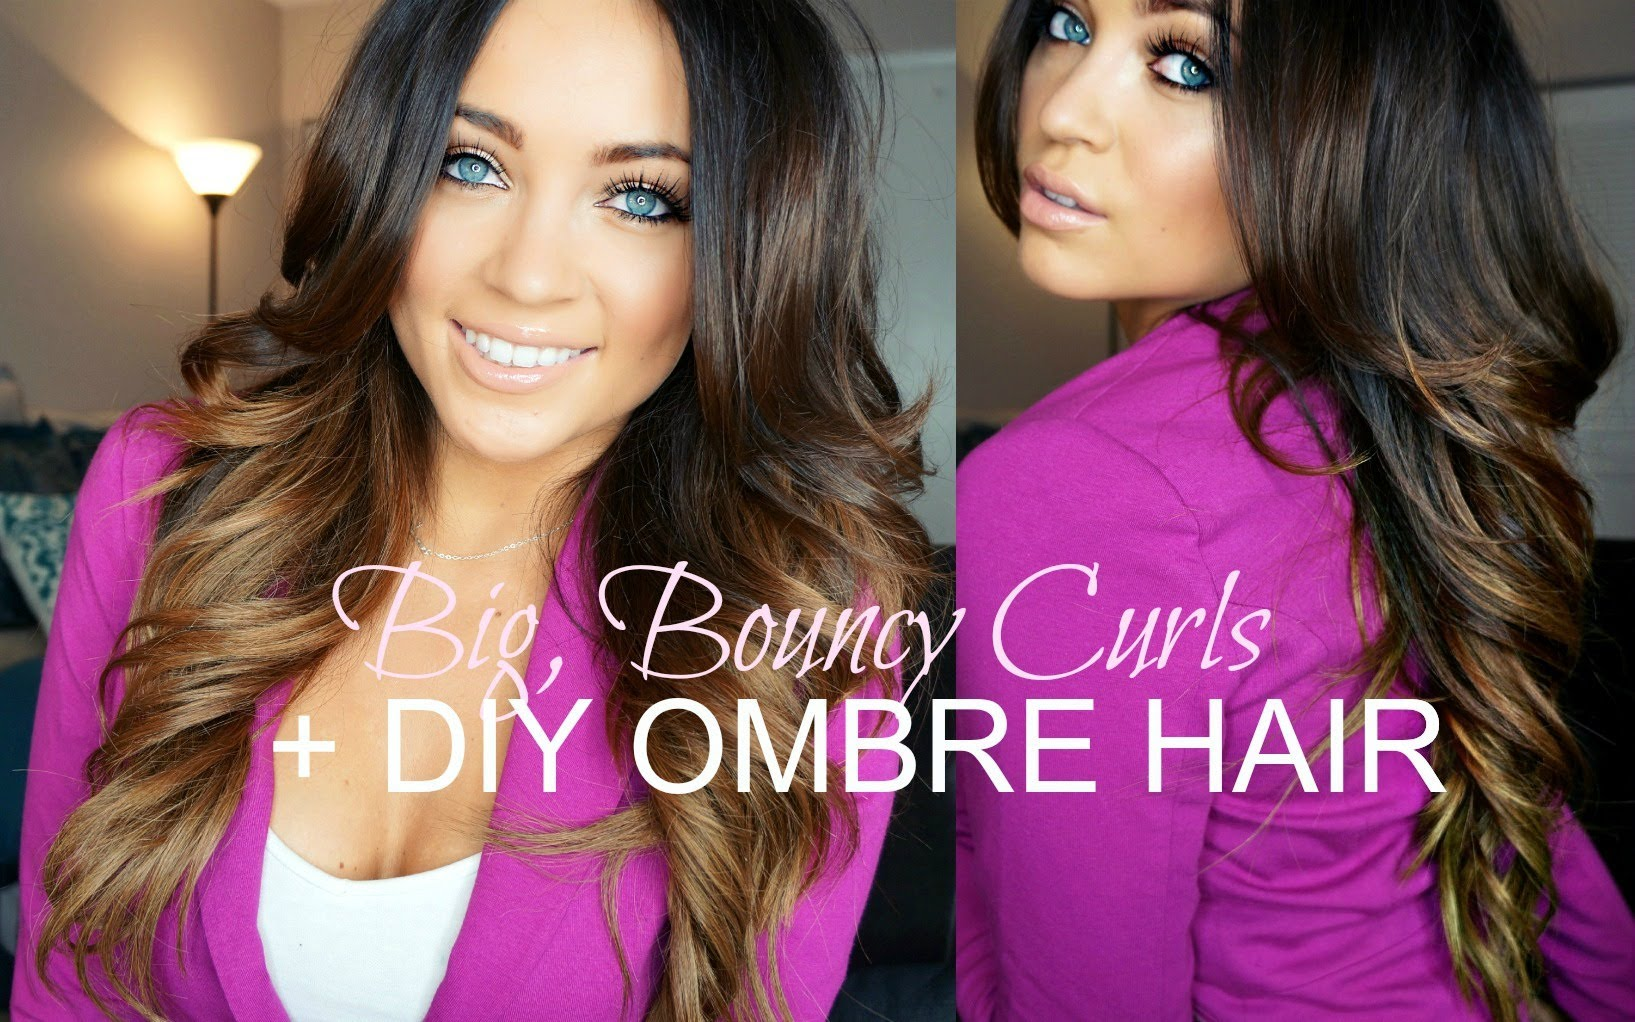 Curled ombre hair tutorial at home